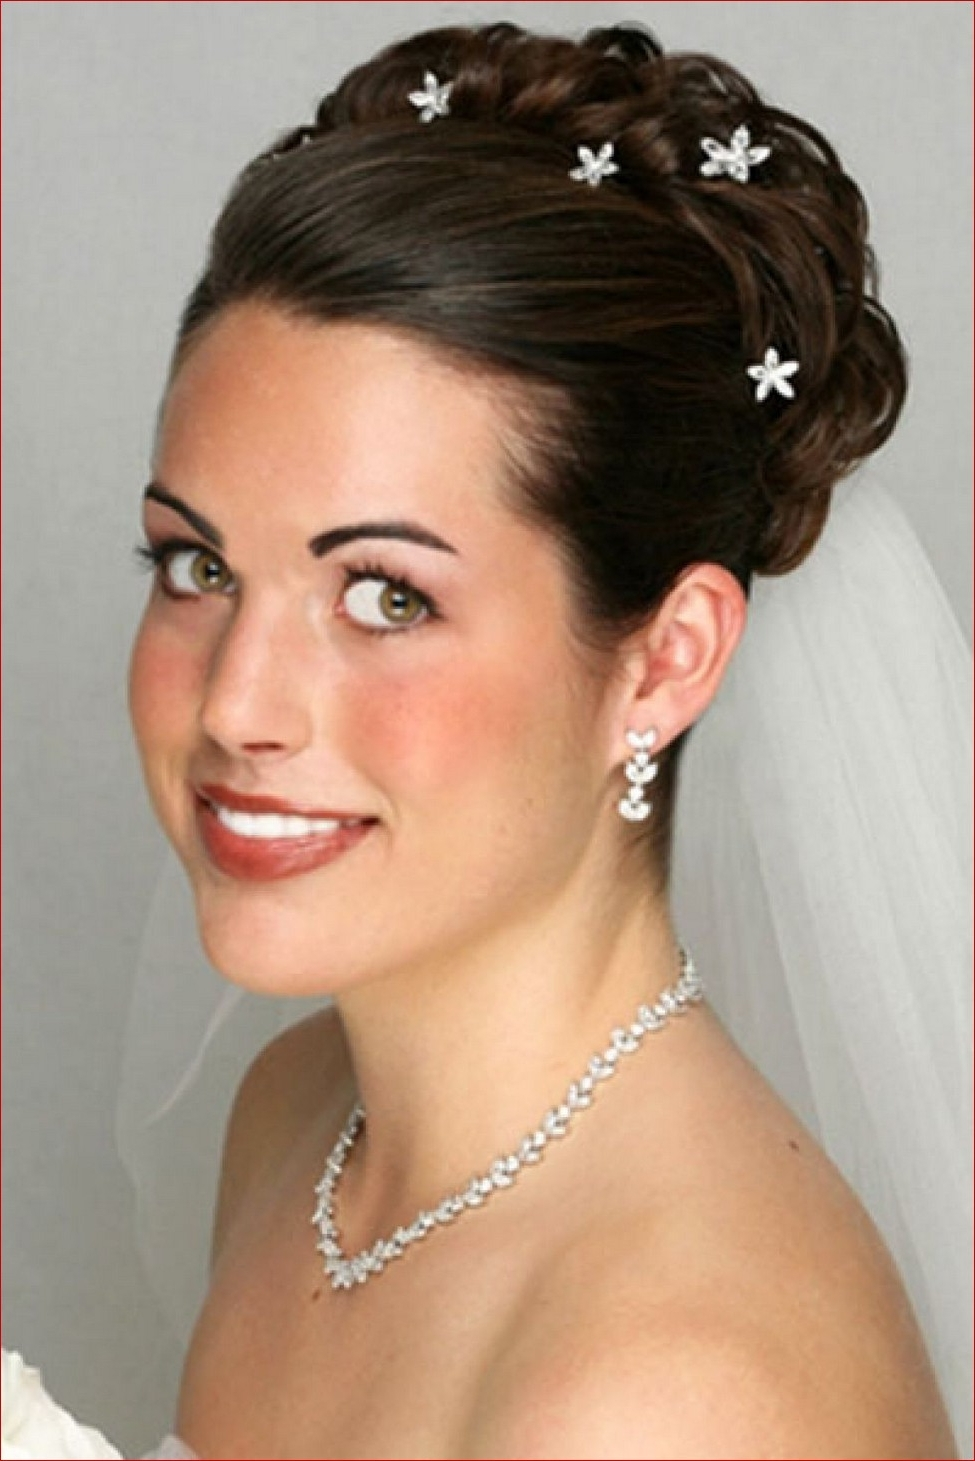 Bridal Hairstyles For Medium Hair – Hairstyle For Women & Man Within Wedding Updos Shoulder Length Hairstyles (View 5 of 15)